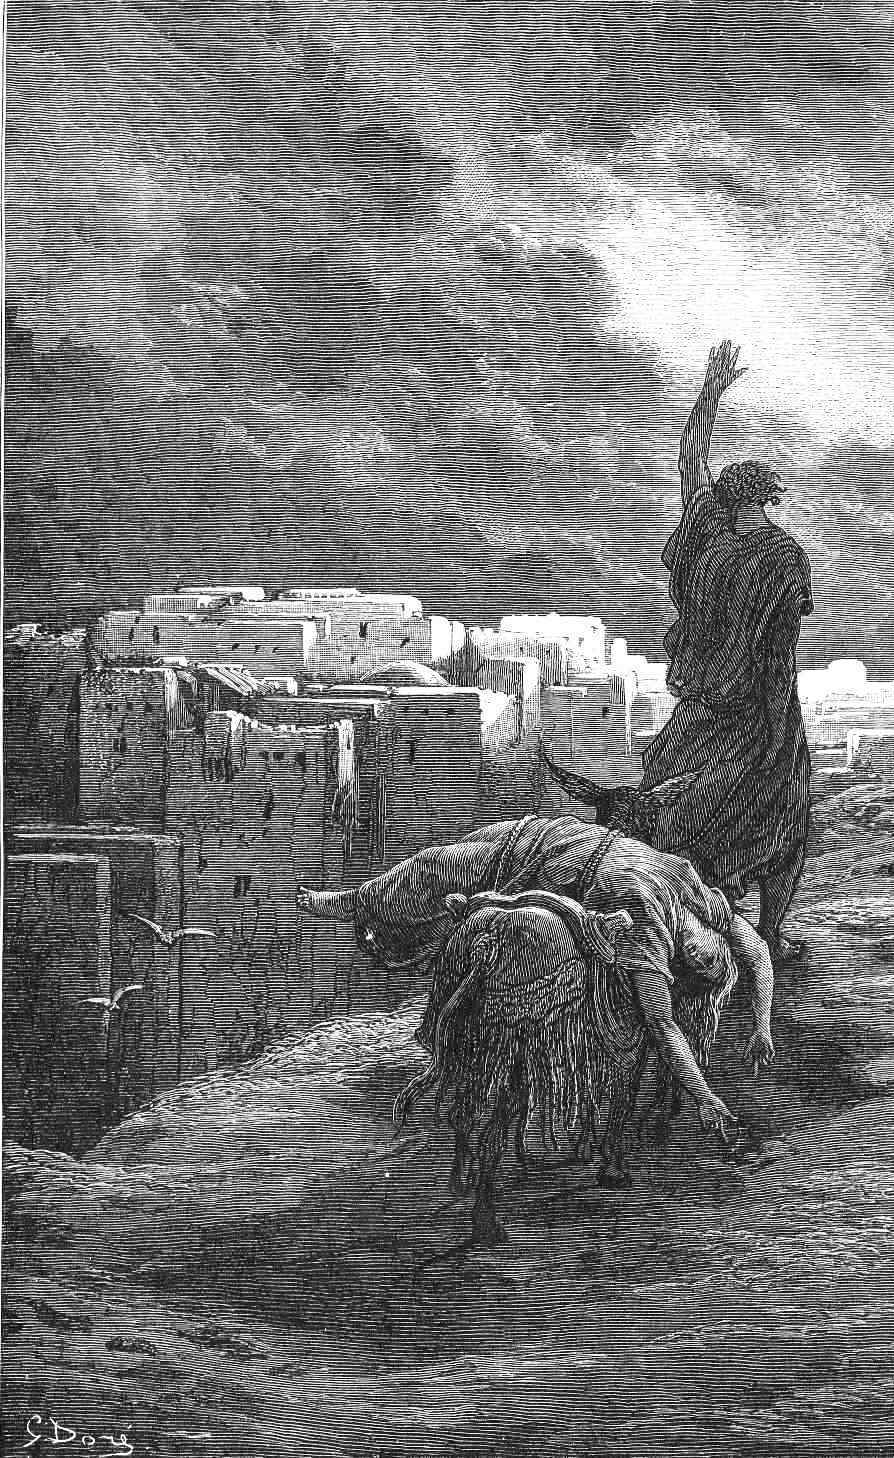 Levite calling for vengeance for the gang-rape murder of his concubine